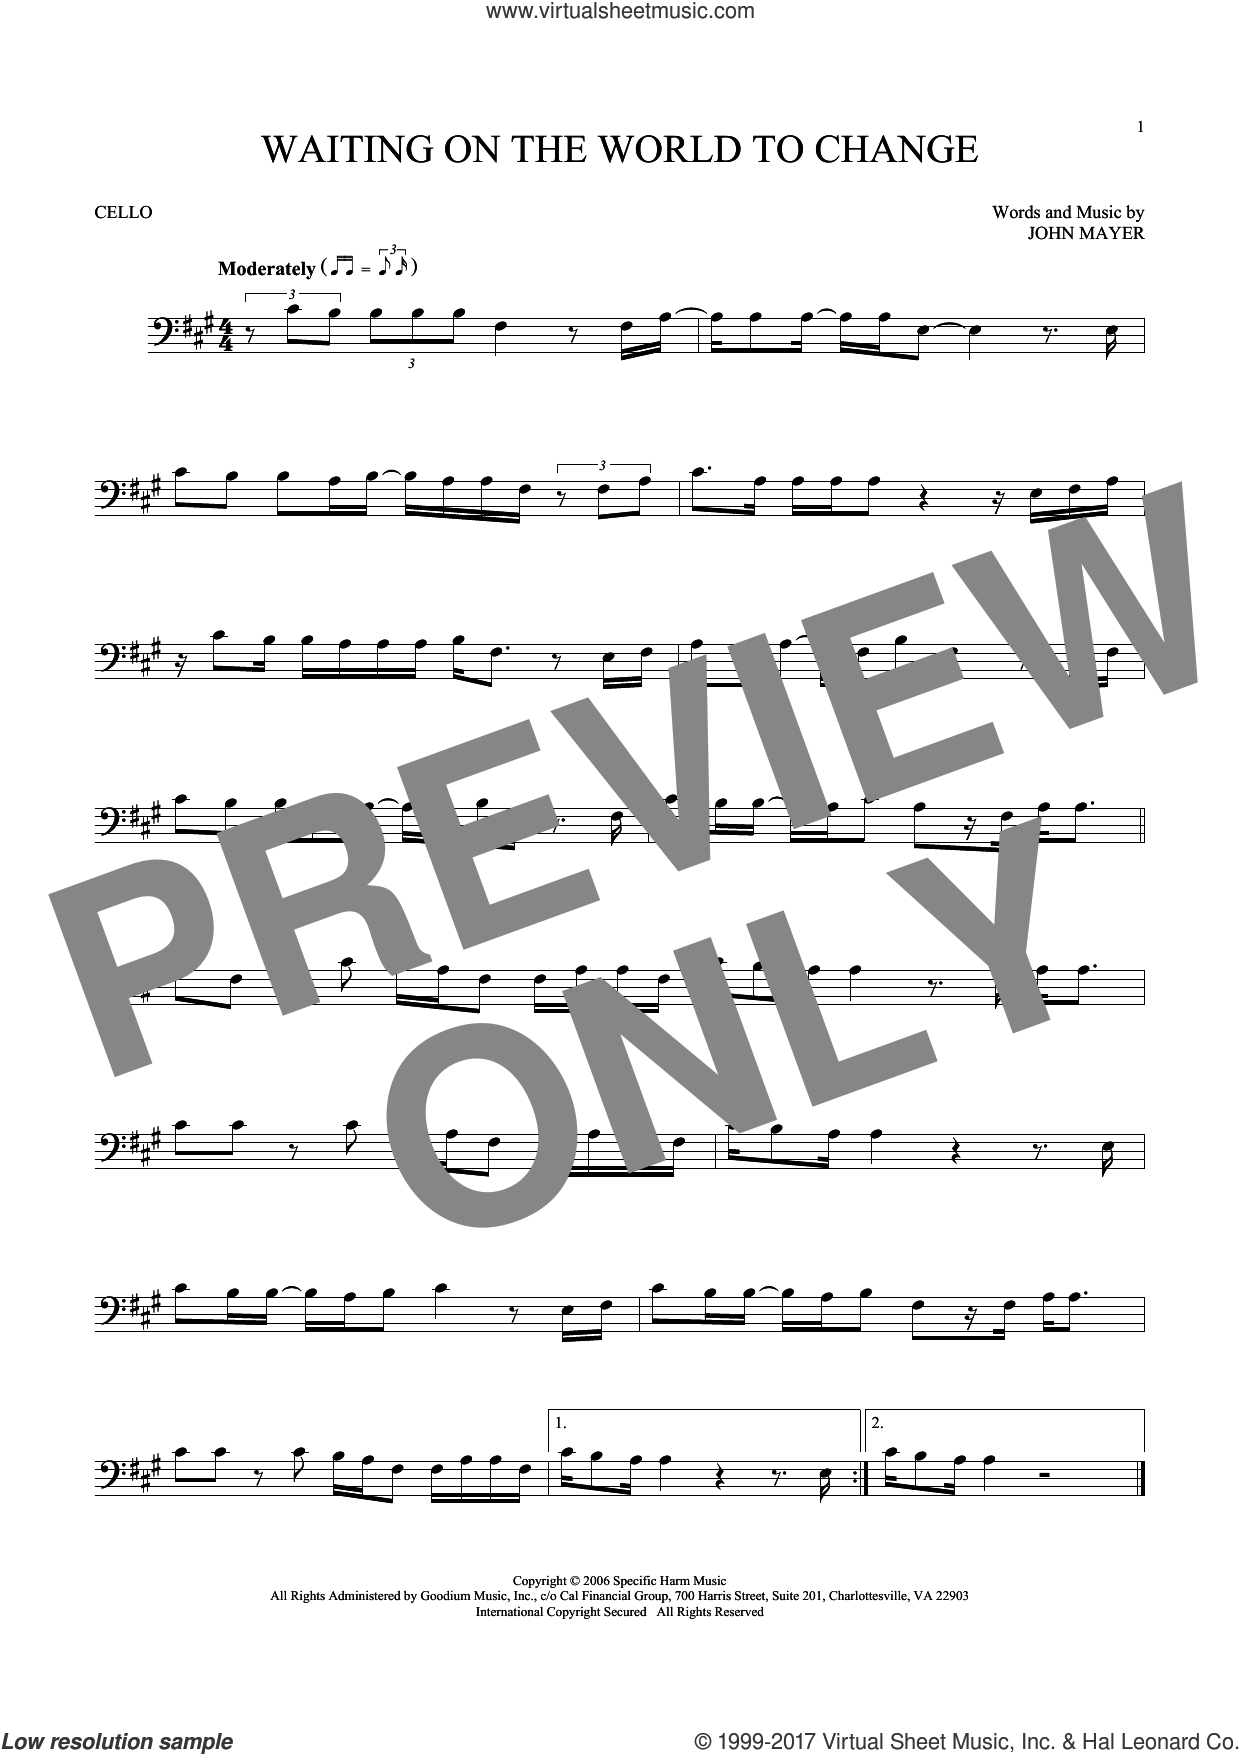 Waiting On The World To Change sheet music for cello solo by John Mayer. Score Image Preview.